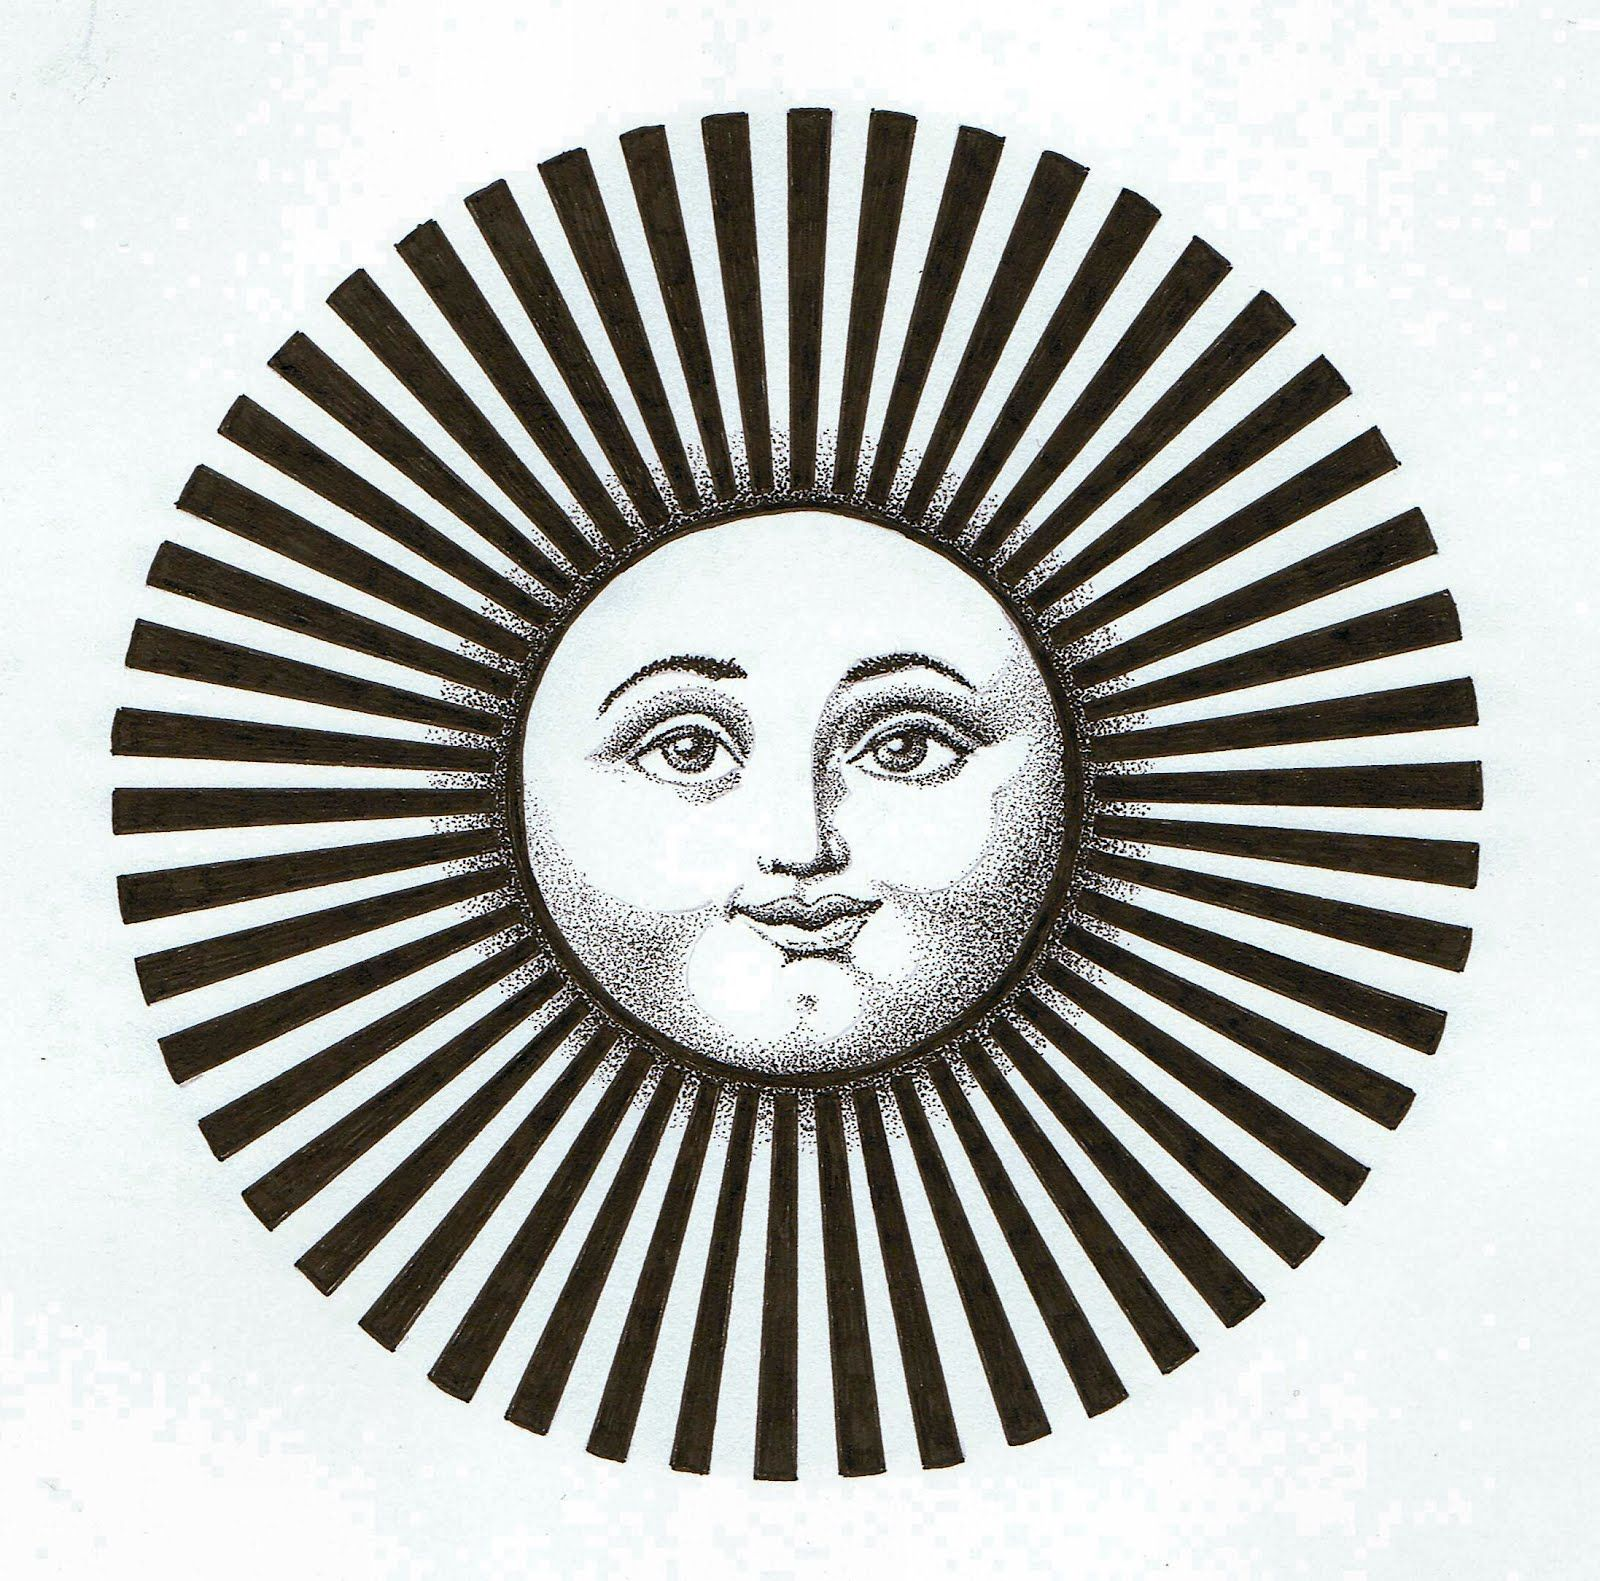 Fornasetti Art Prints Fornasetti Sun Google Search I Just Like It I Dont Know